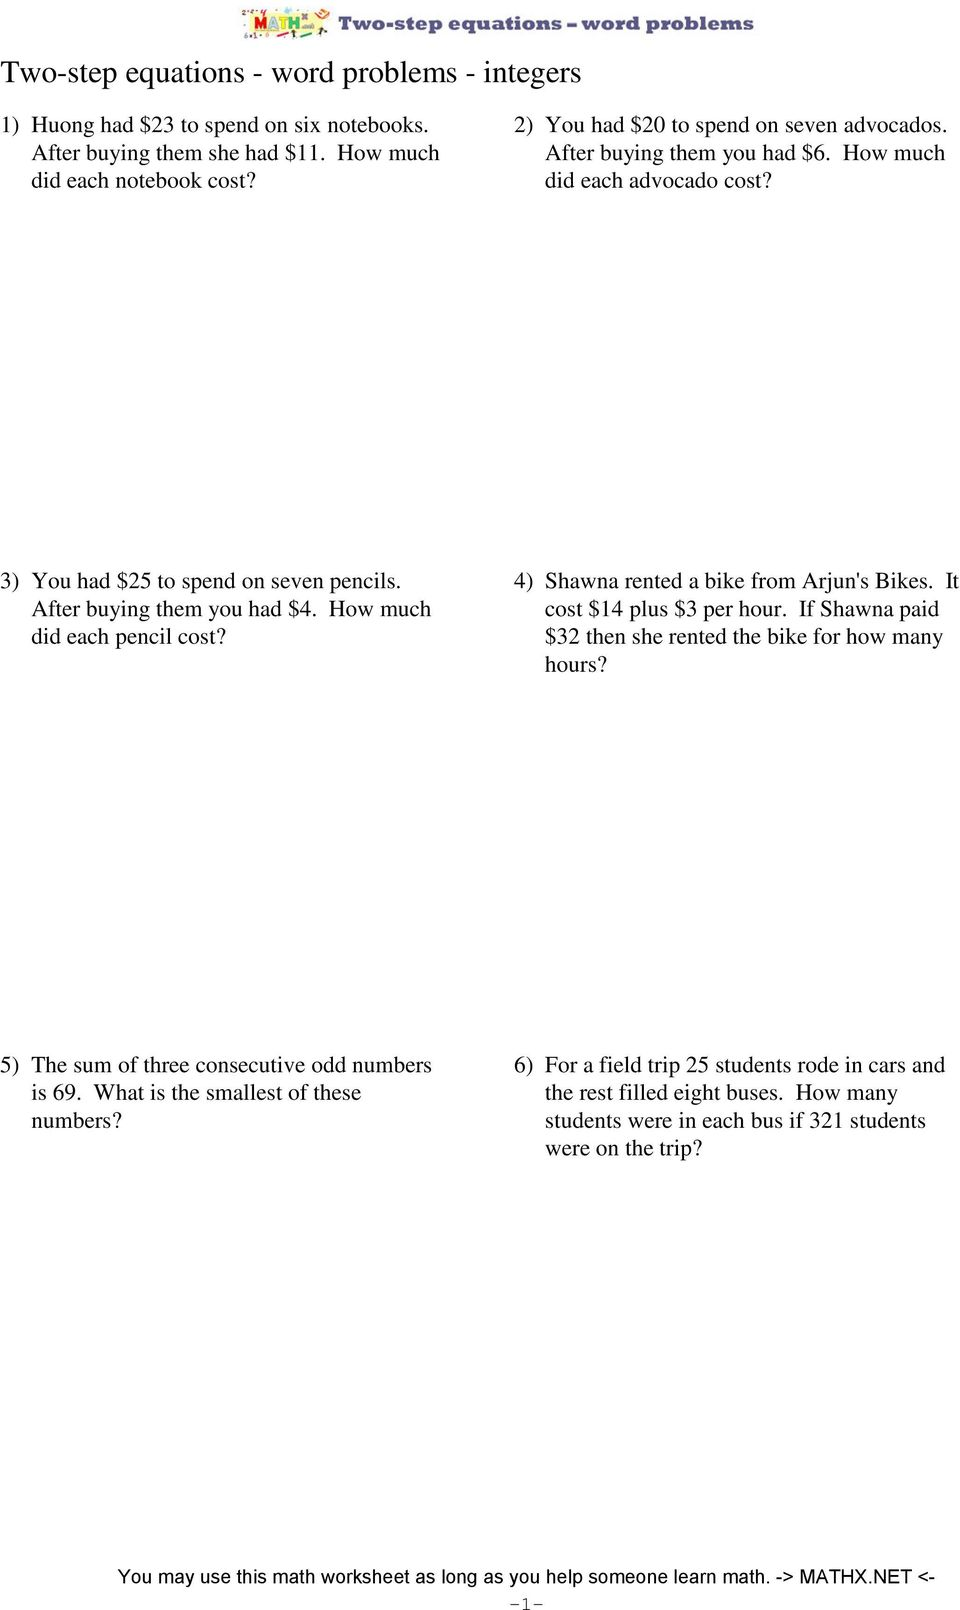 hight resolution of Mathx Net Two Step Equations Word Problems Integers Answer Key -  Tessshebaylo